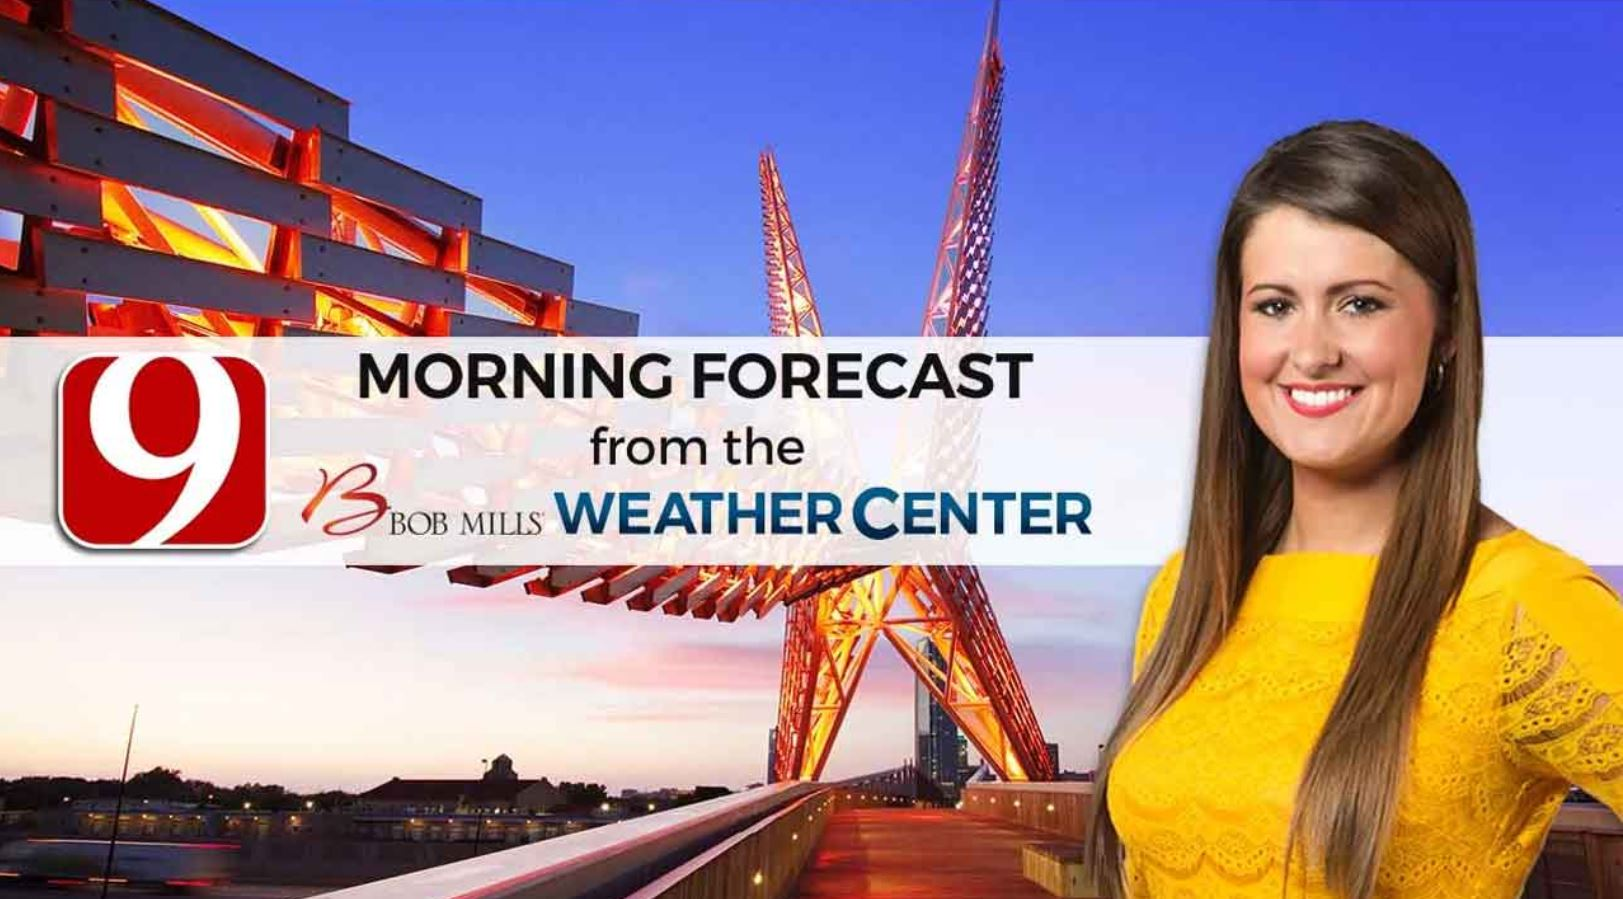 Lacey's Friday Morning Forecast